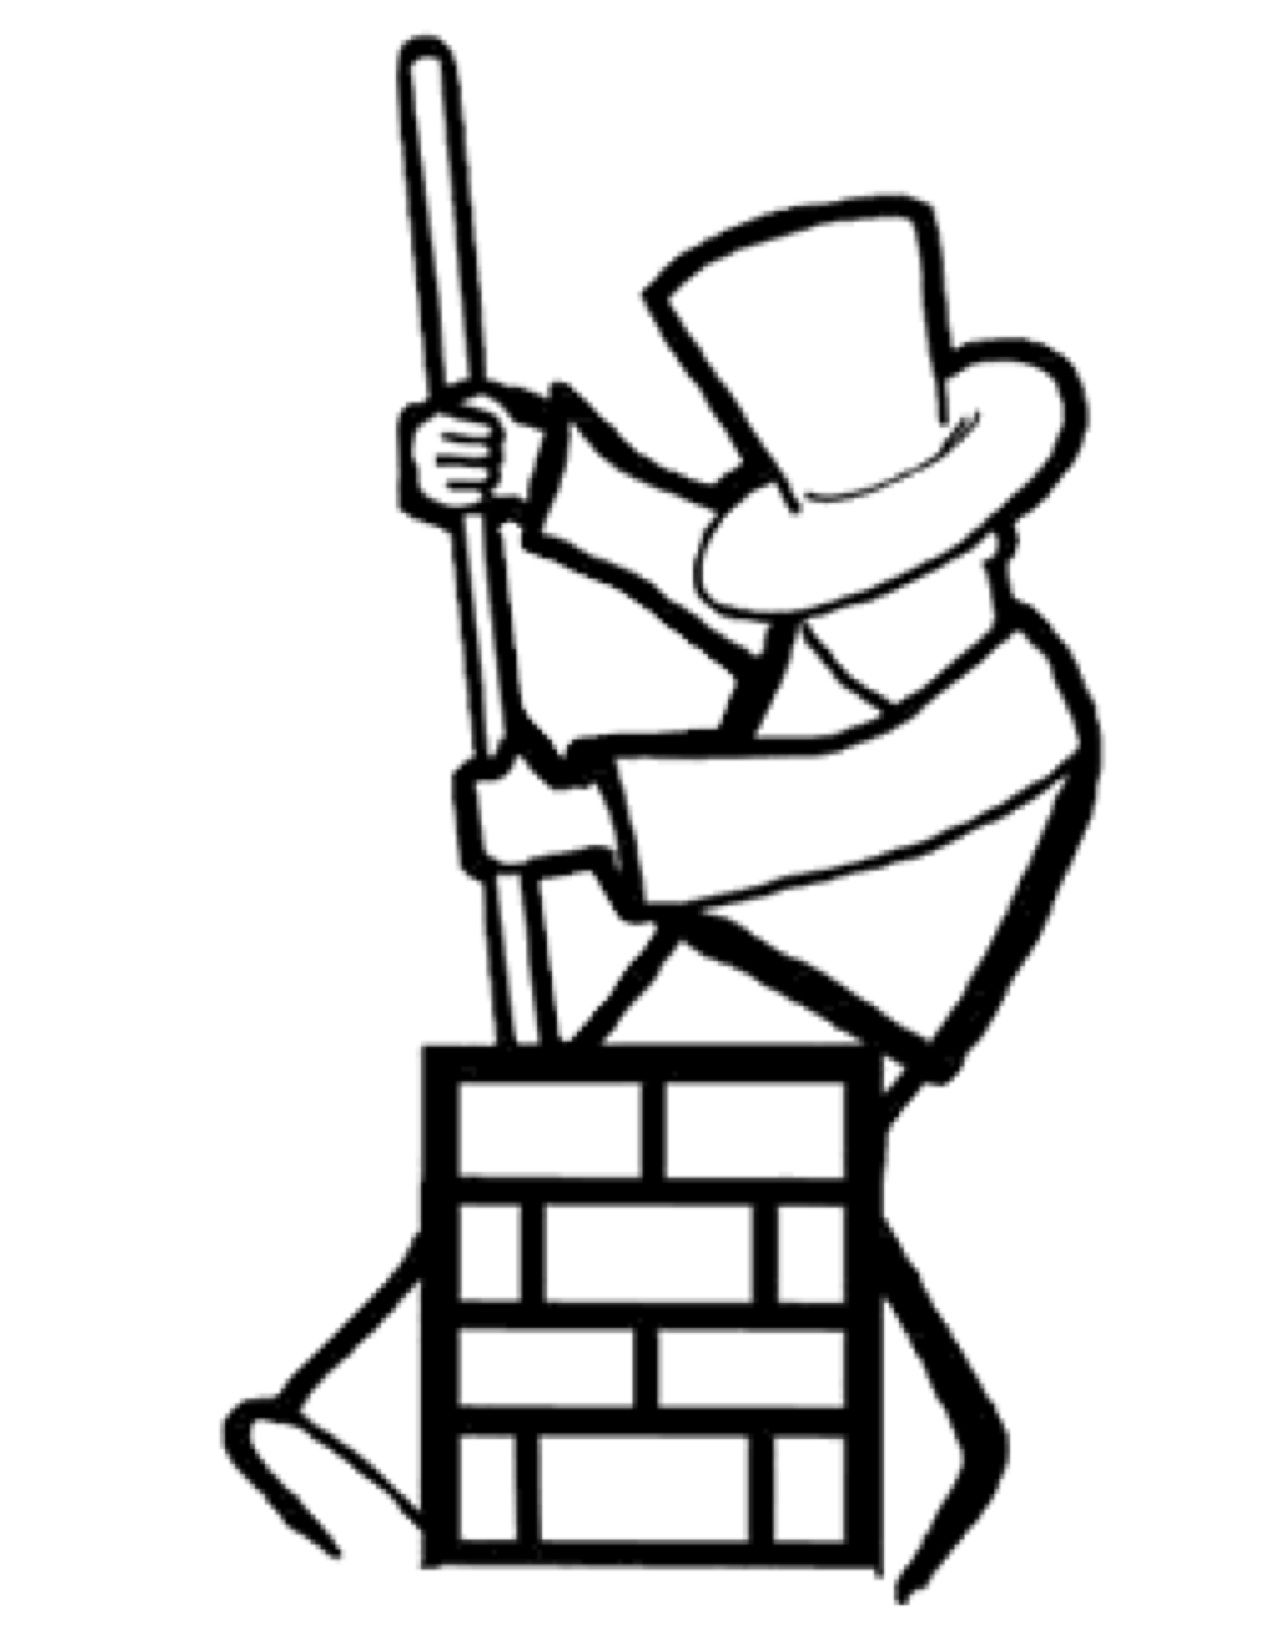 Chimney Drawing.